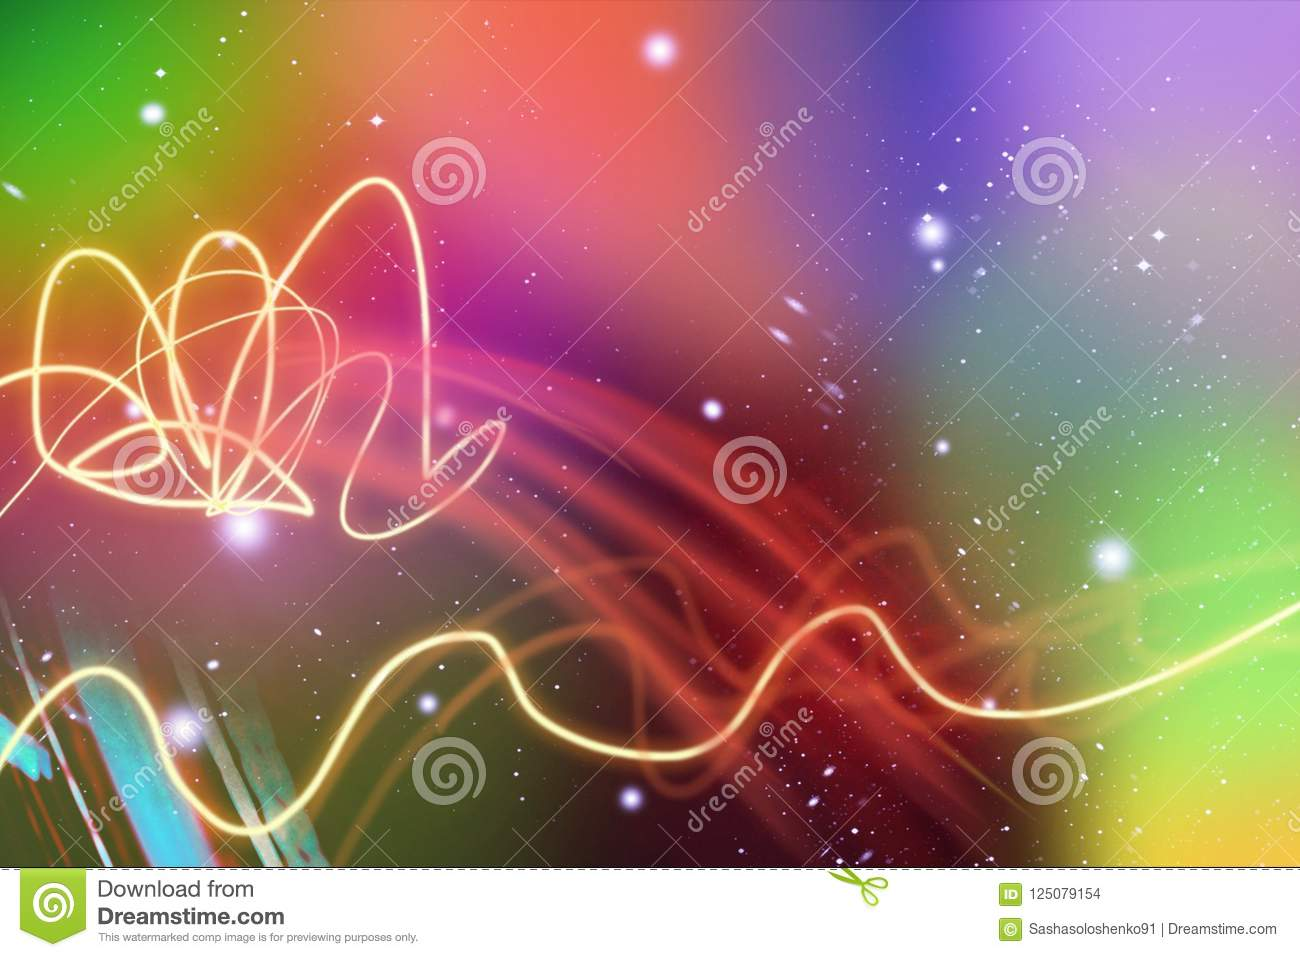 A colorful, abstract colorful background